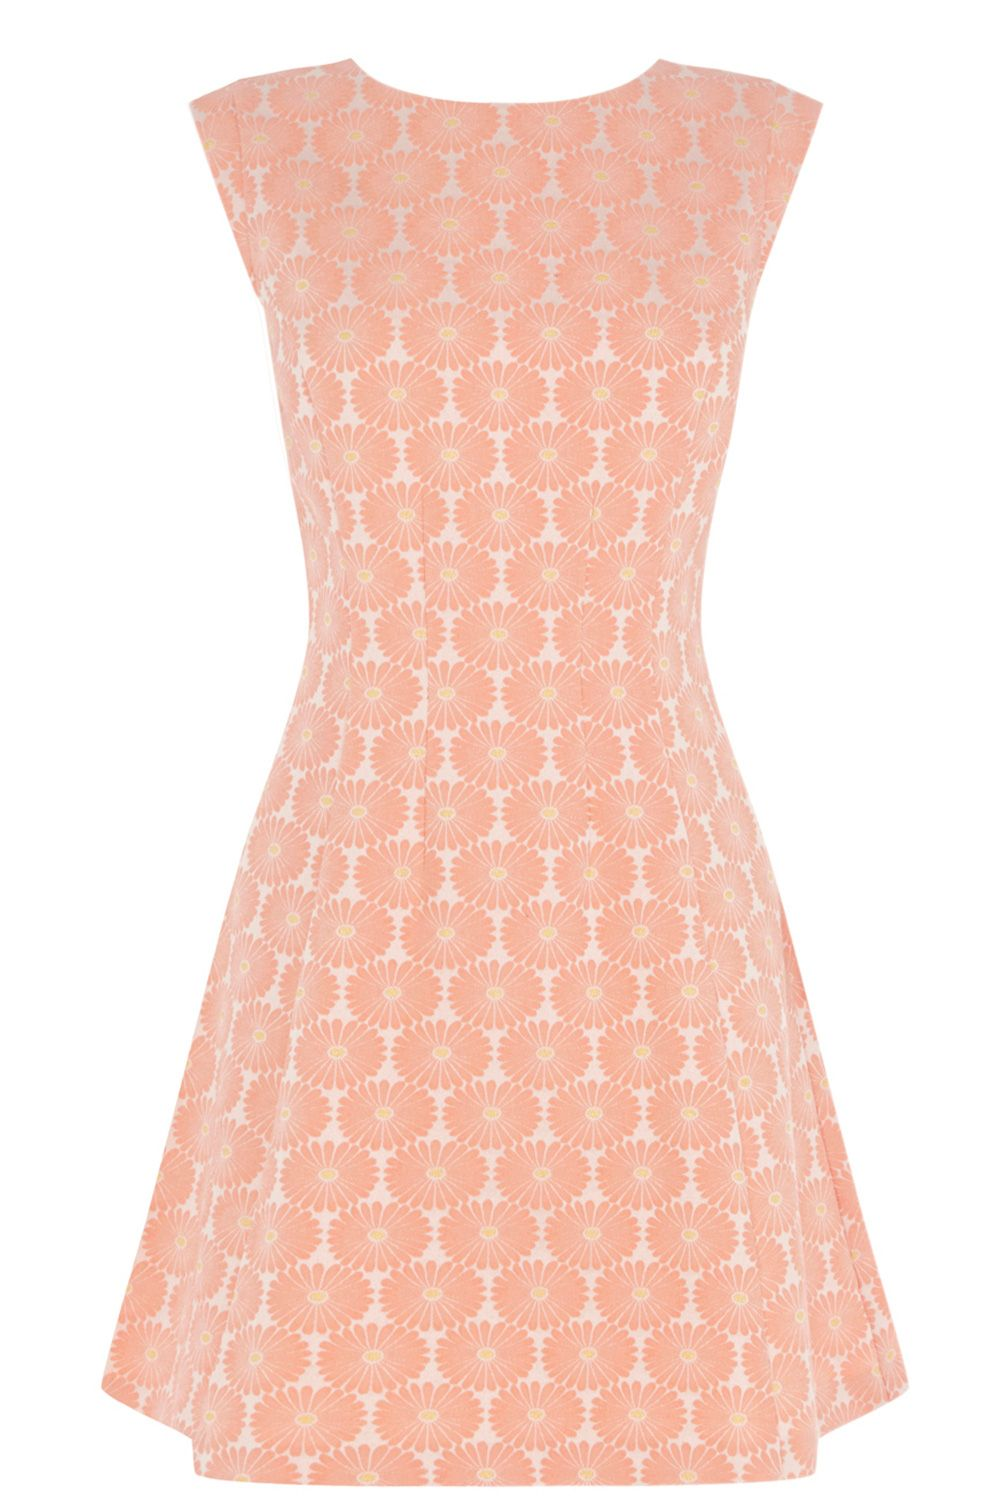 Daisy jacquard dress